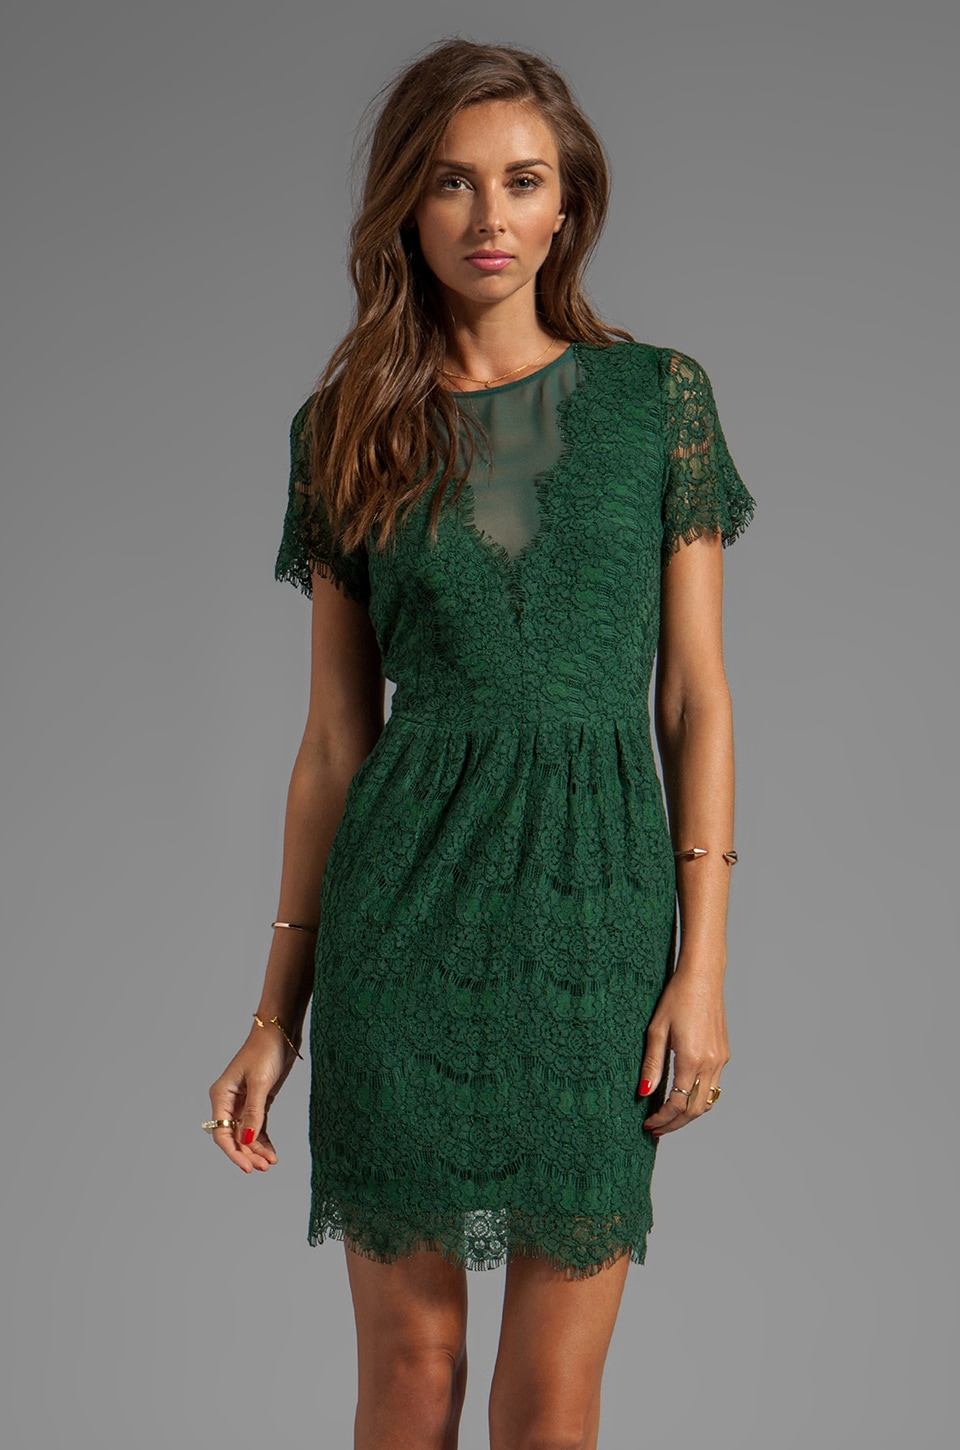 Dolce Vita Saurus Eyelash Lace Dress in Hunter